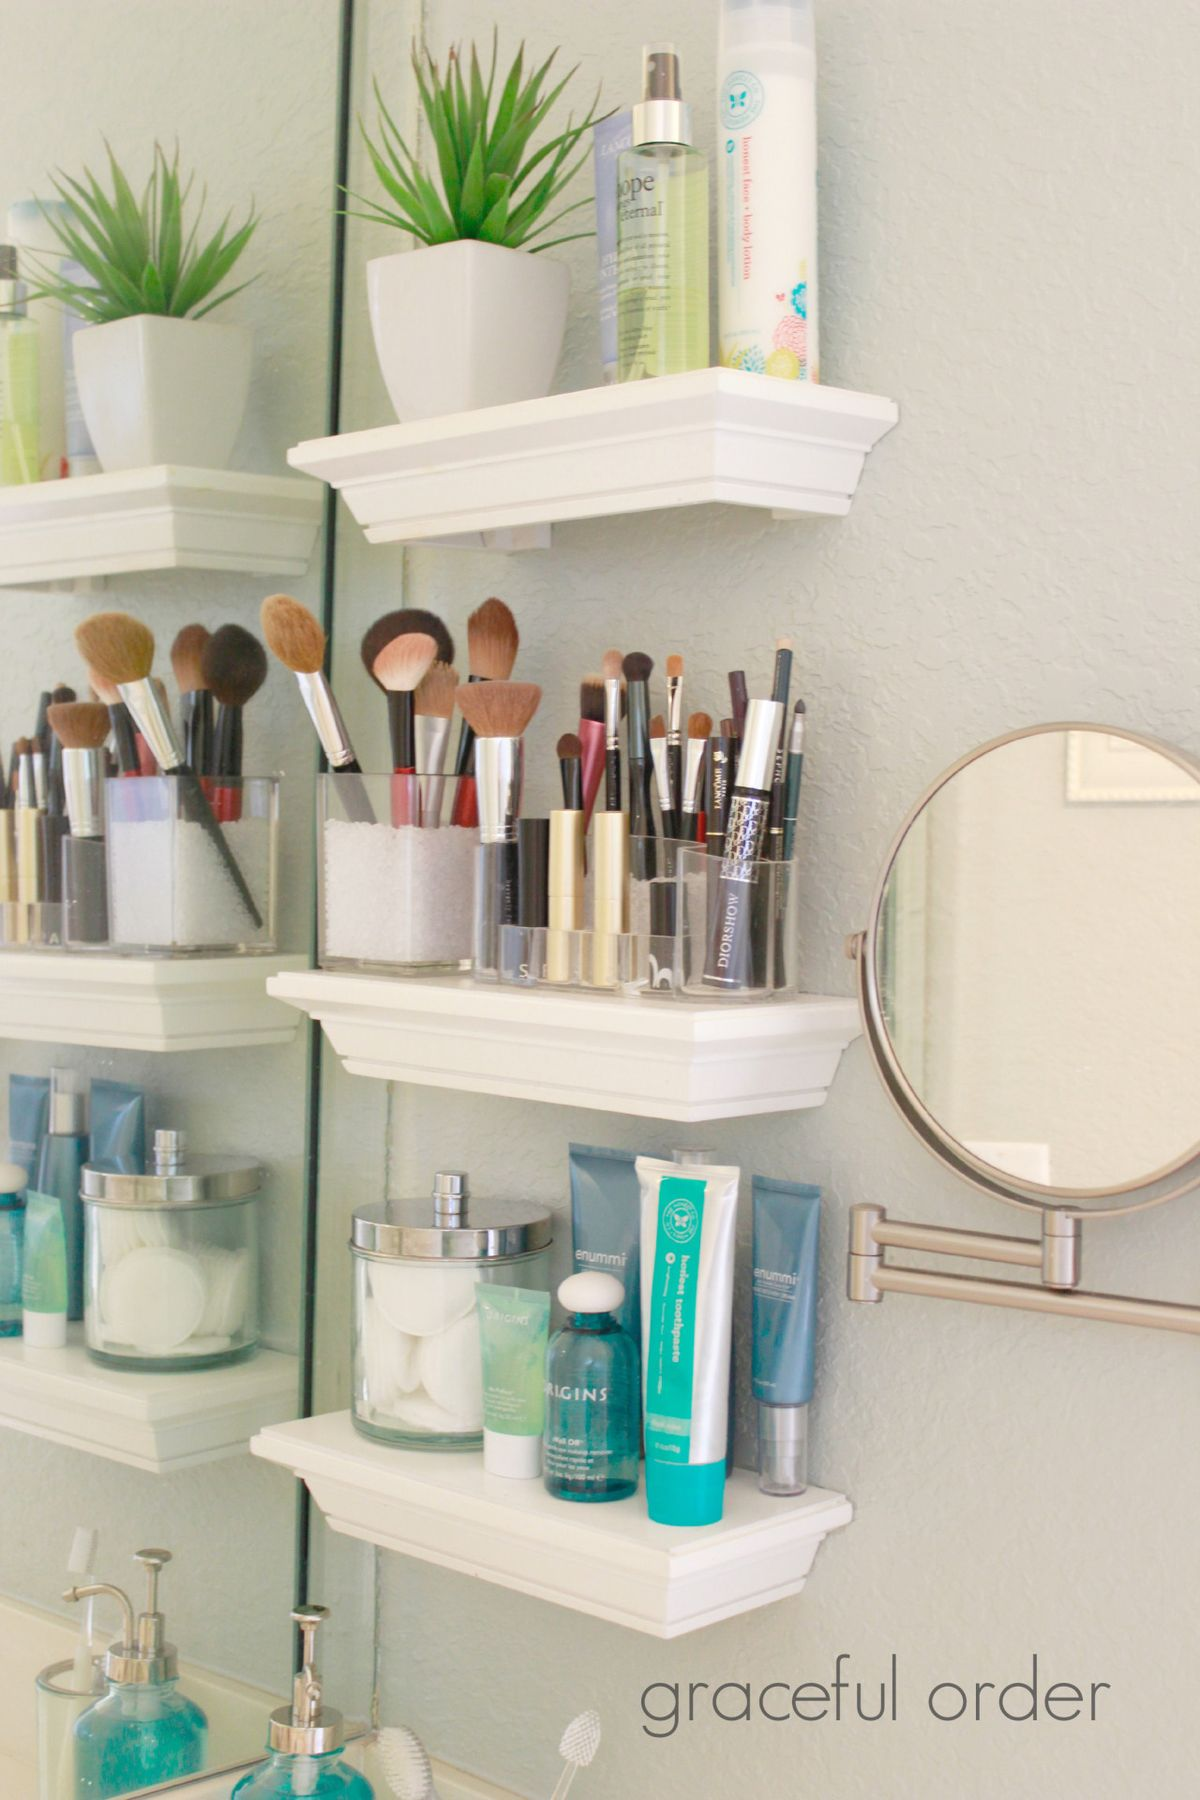 Diy bathroom storage ideas - Bathroom Storage Ideas